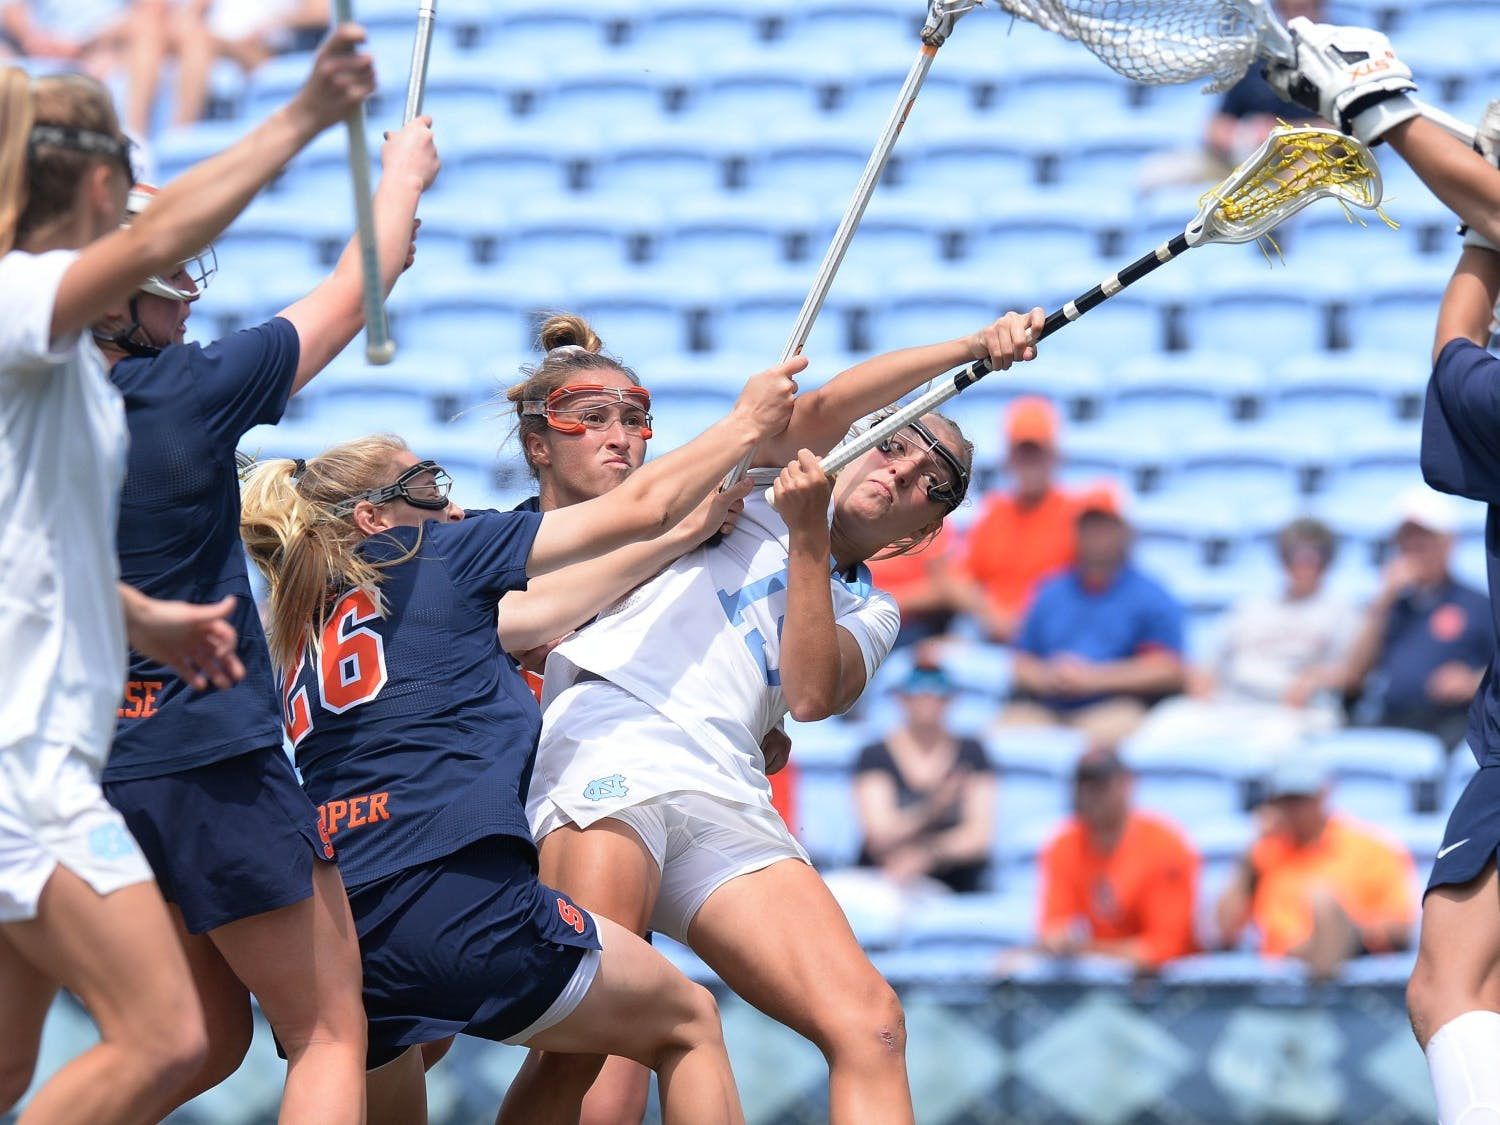 Scottie Rose Growney clashes with defenders during the ACC Tournament Championship at Dorrance Field on Sunday, May 2, 2021. Photo courtesy of Jeff Camarati.